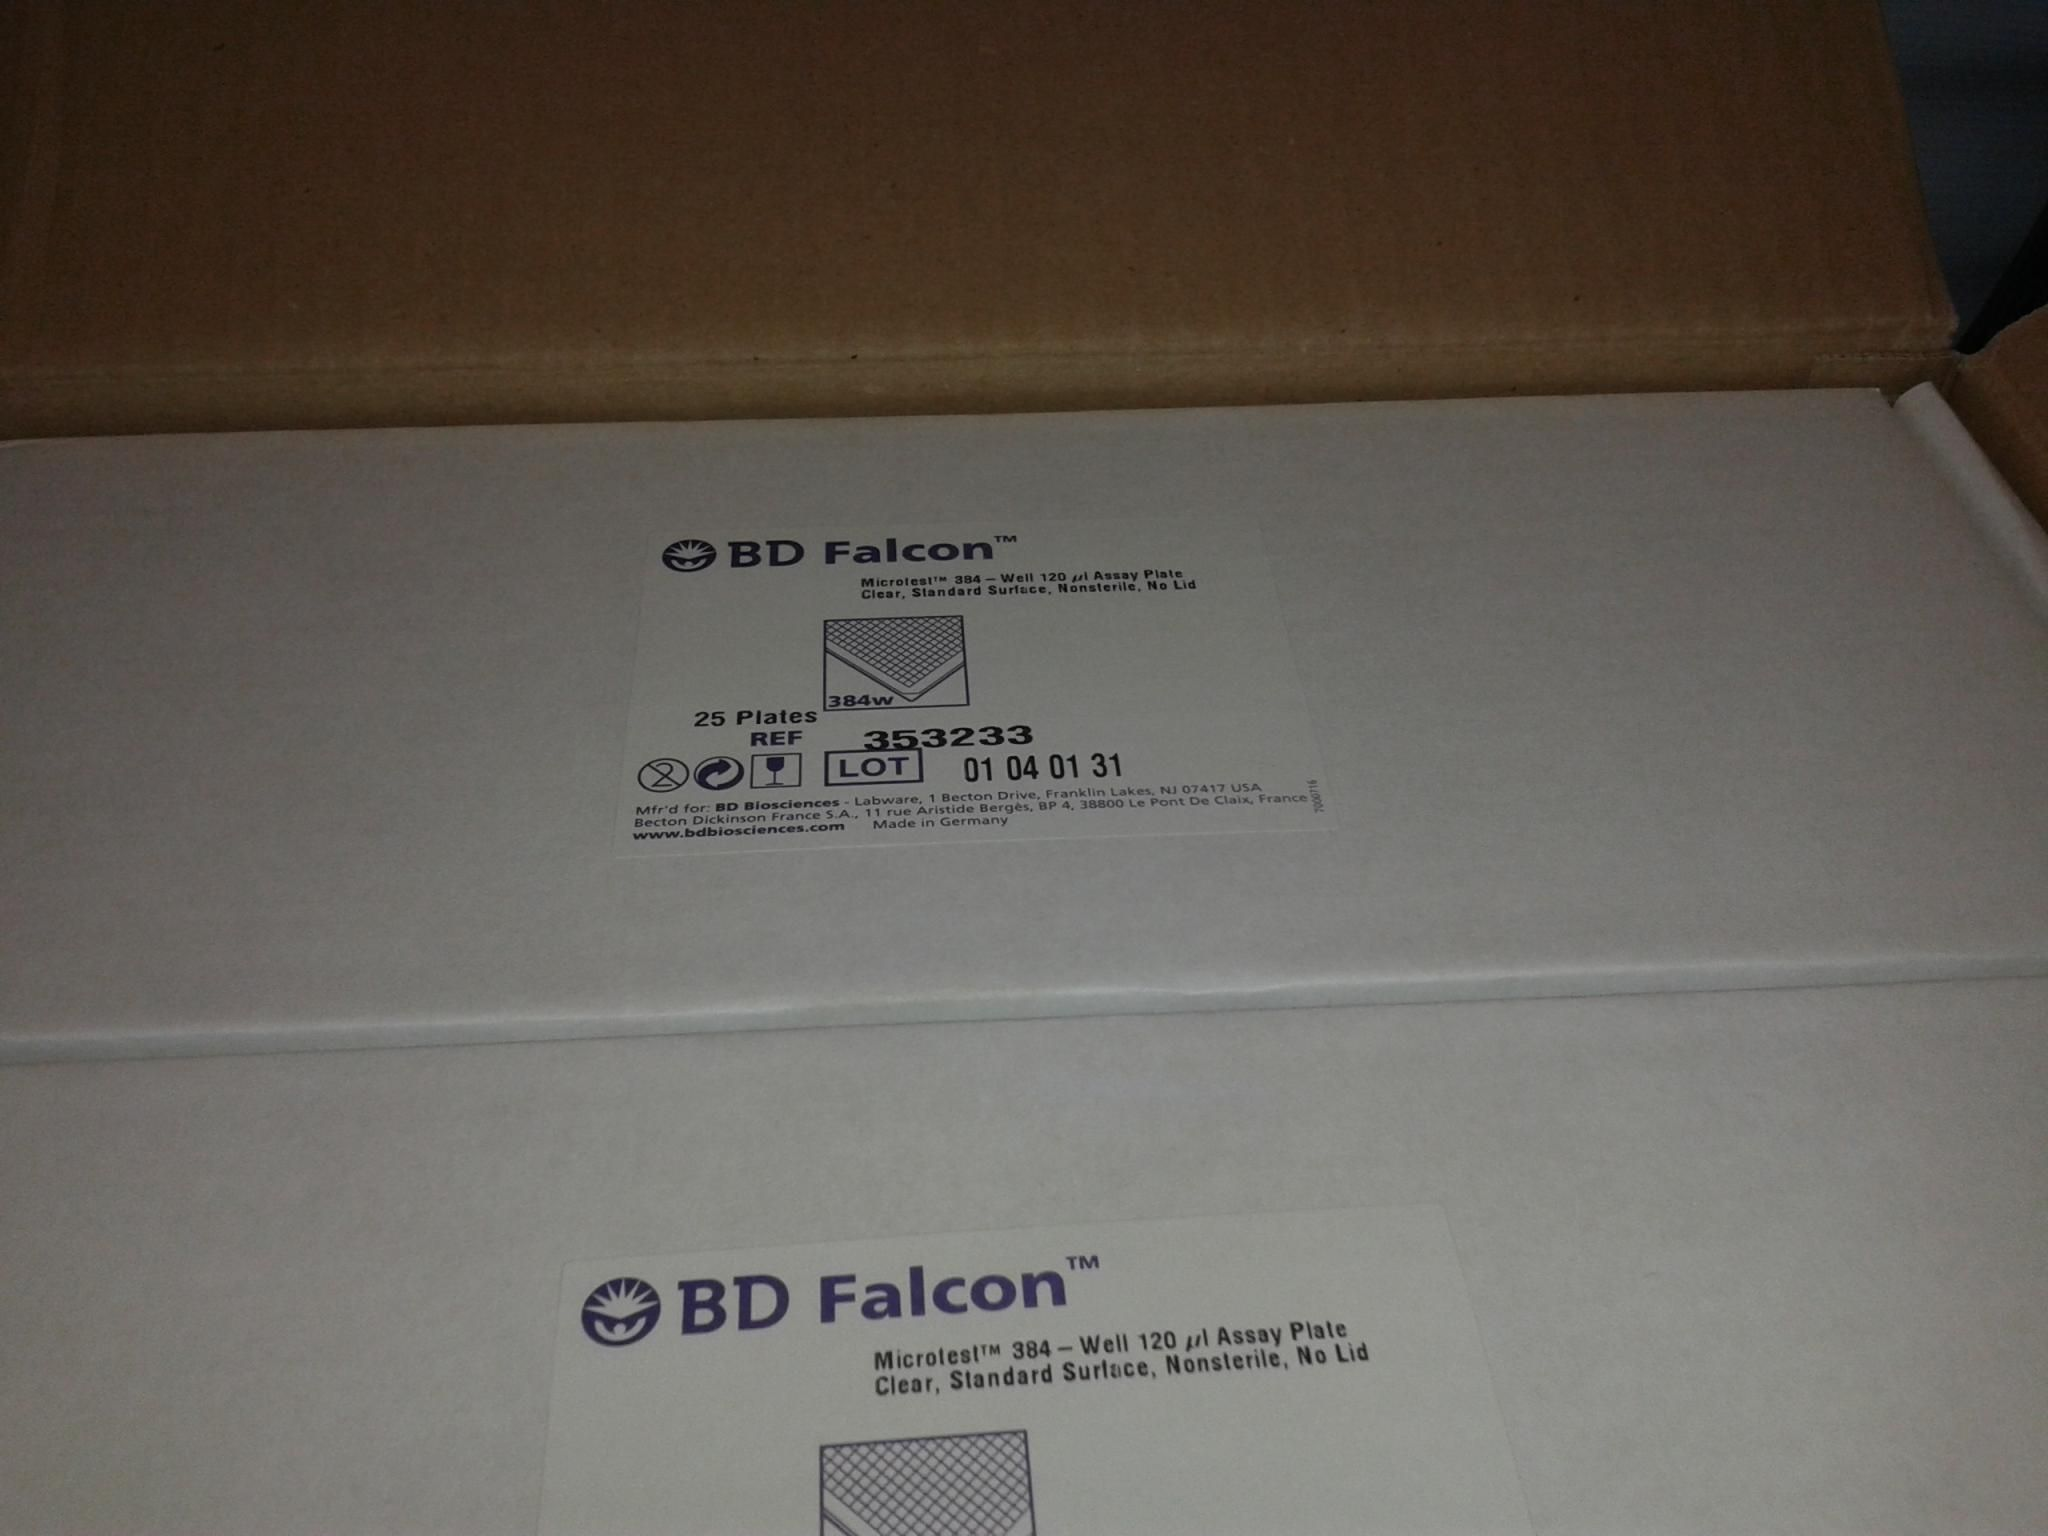 BDFalcon Microtest 384 well 120ul Assay Plate,cat353233